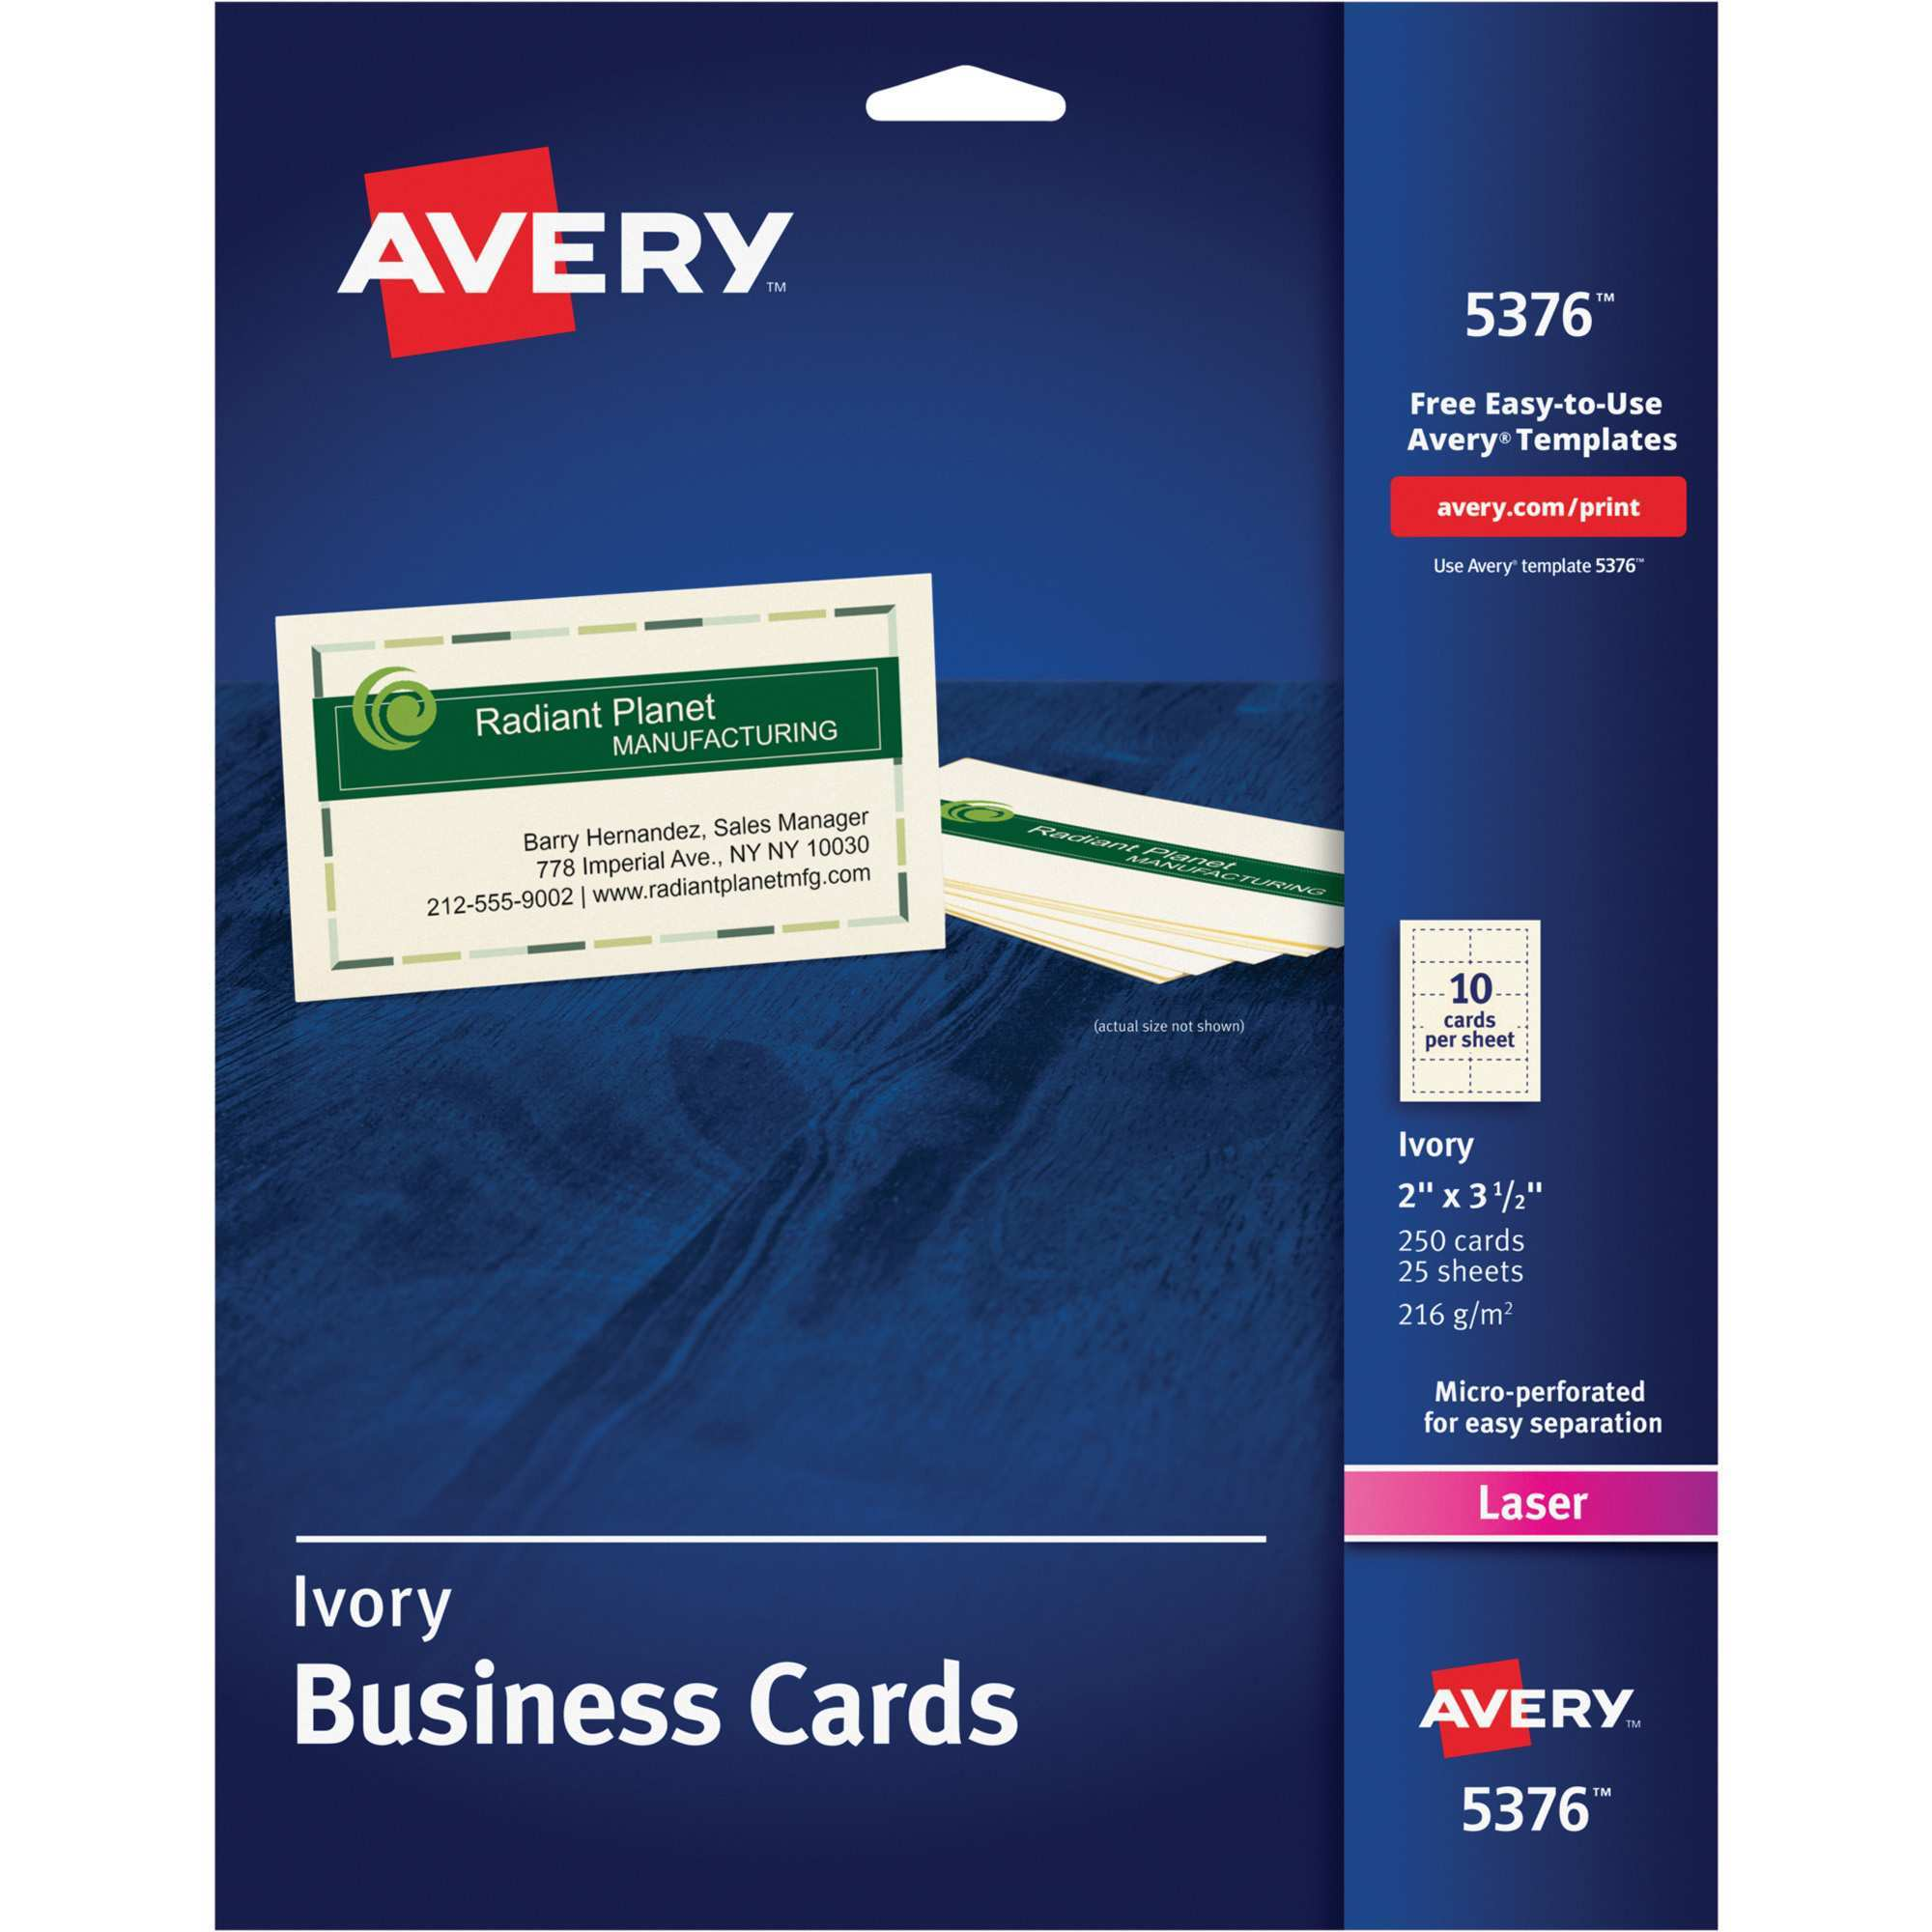 16 Free Printable Avery Business Card Template Software Now for Avery Business Card Template Software